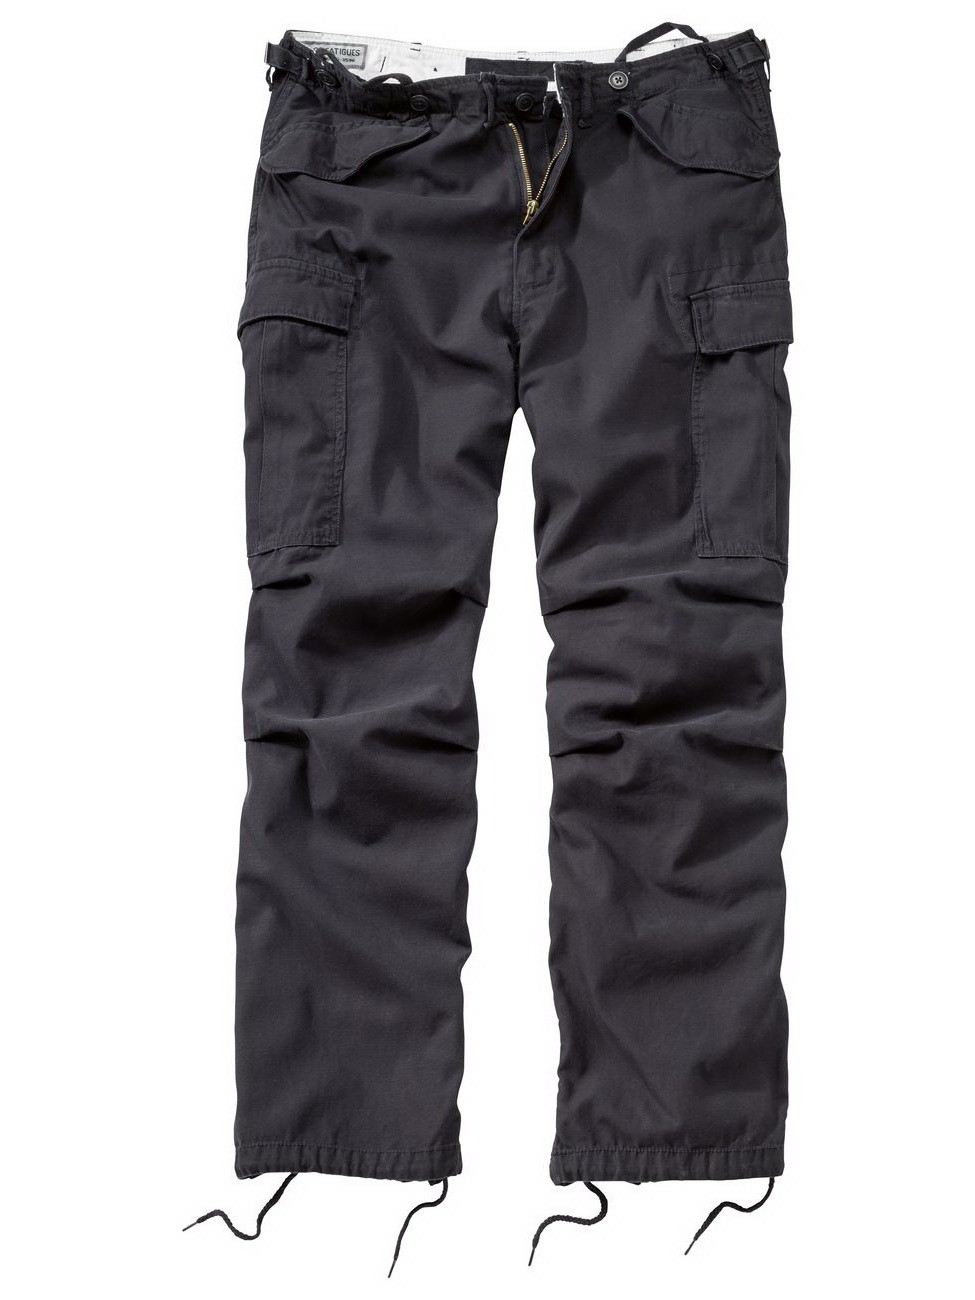 Surplus Herren Hose Vintage Fatigue Trousers 05-3596